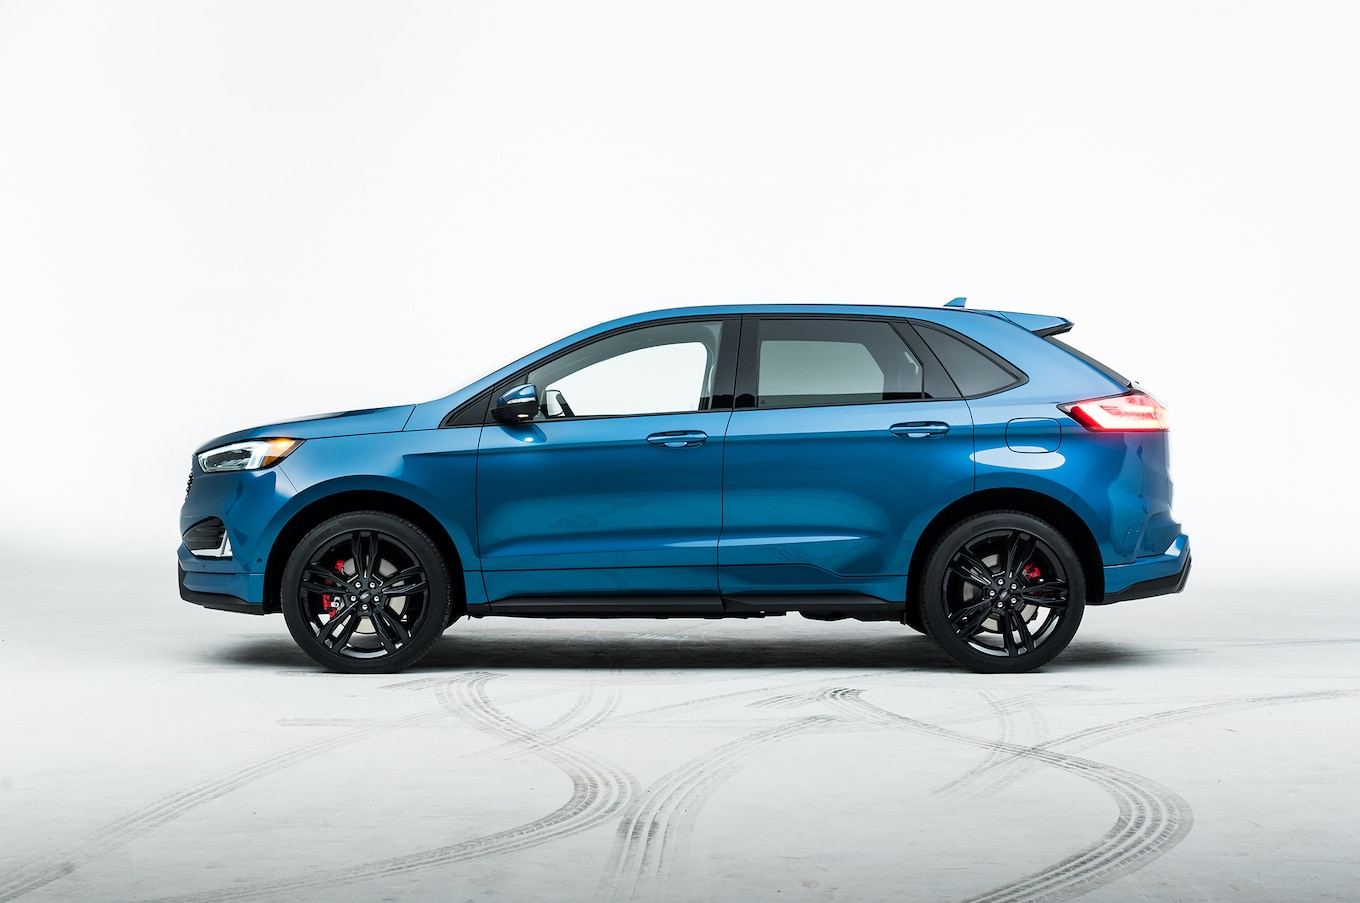 medium resolution of 2019 ford edge st first look first performance suv motor trend 2007 lincoln mkx engine diagram 2011 ford edge engine diagram colored